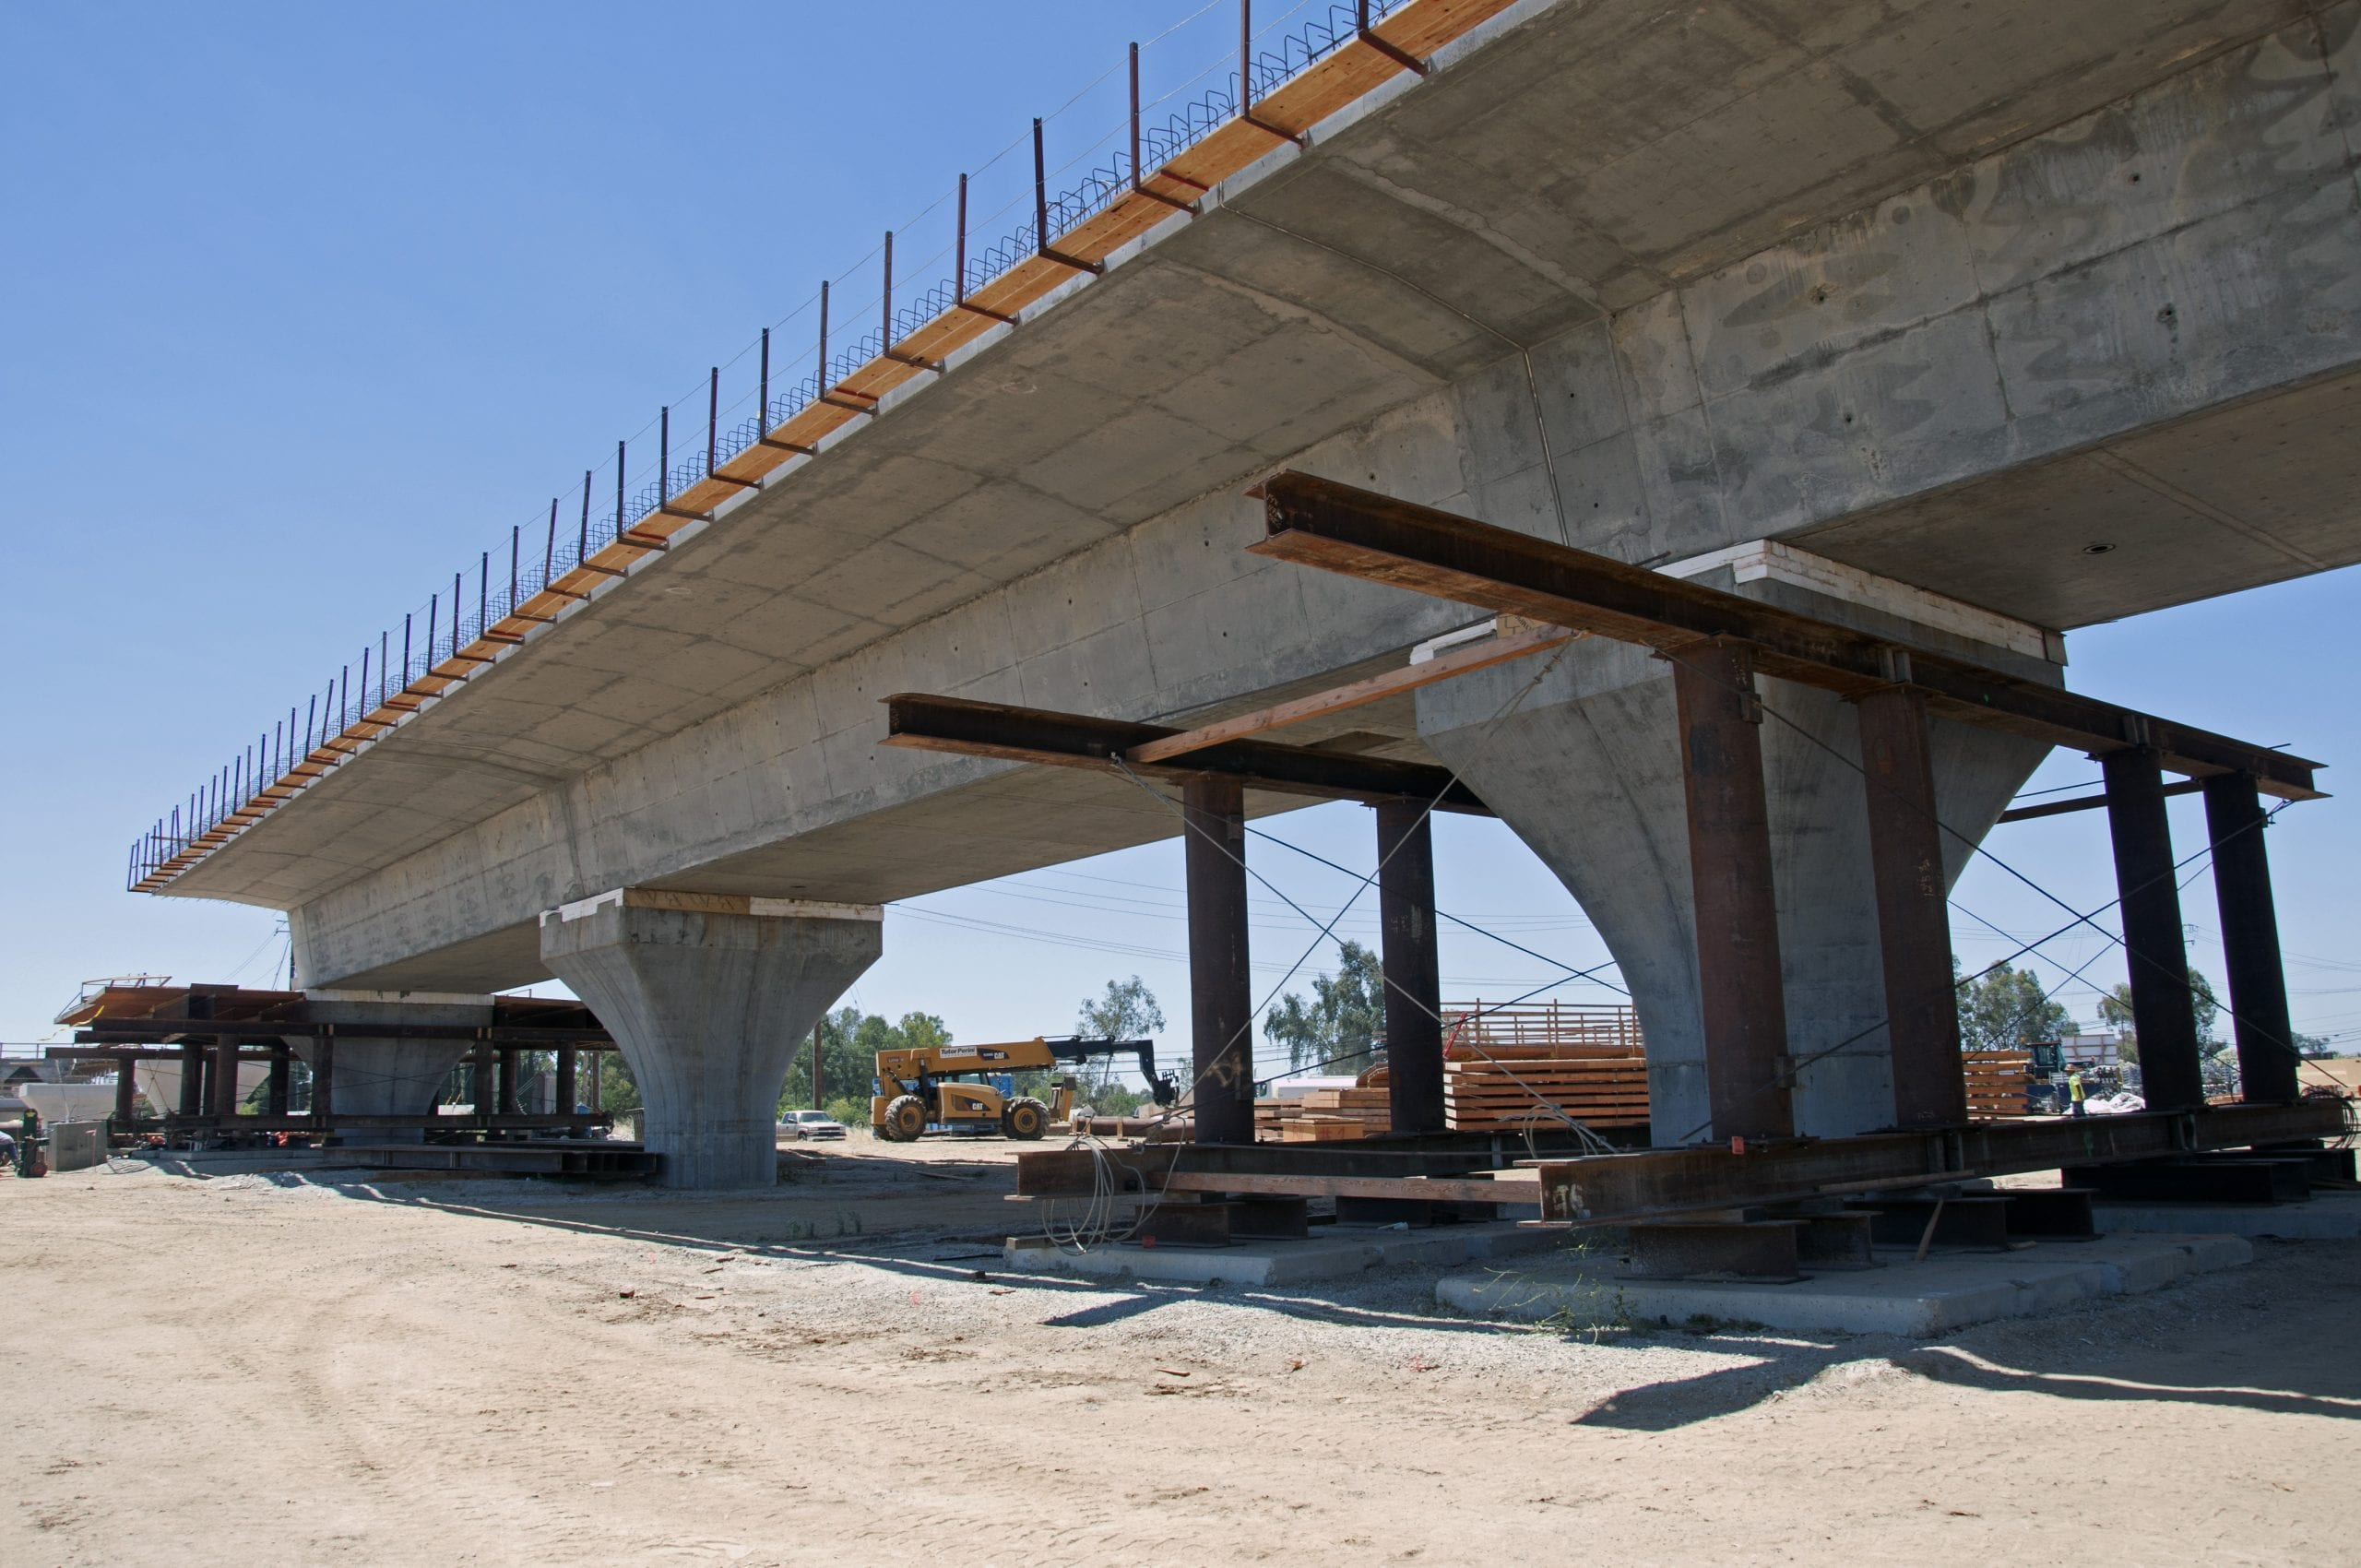 A bridge that would take bullet trains over the Fresno River takes shape. Photo: California High-Speed Rail Authority.